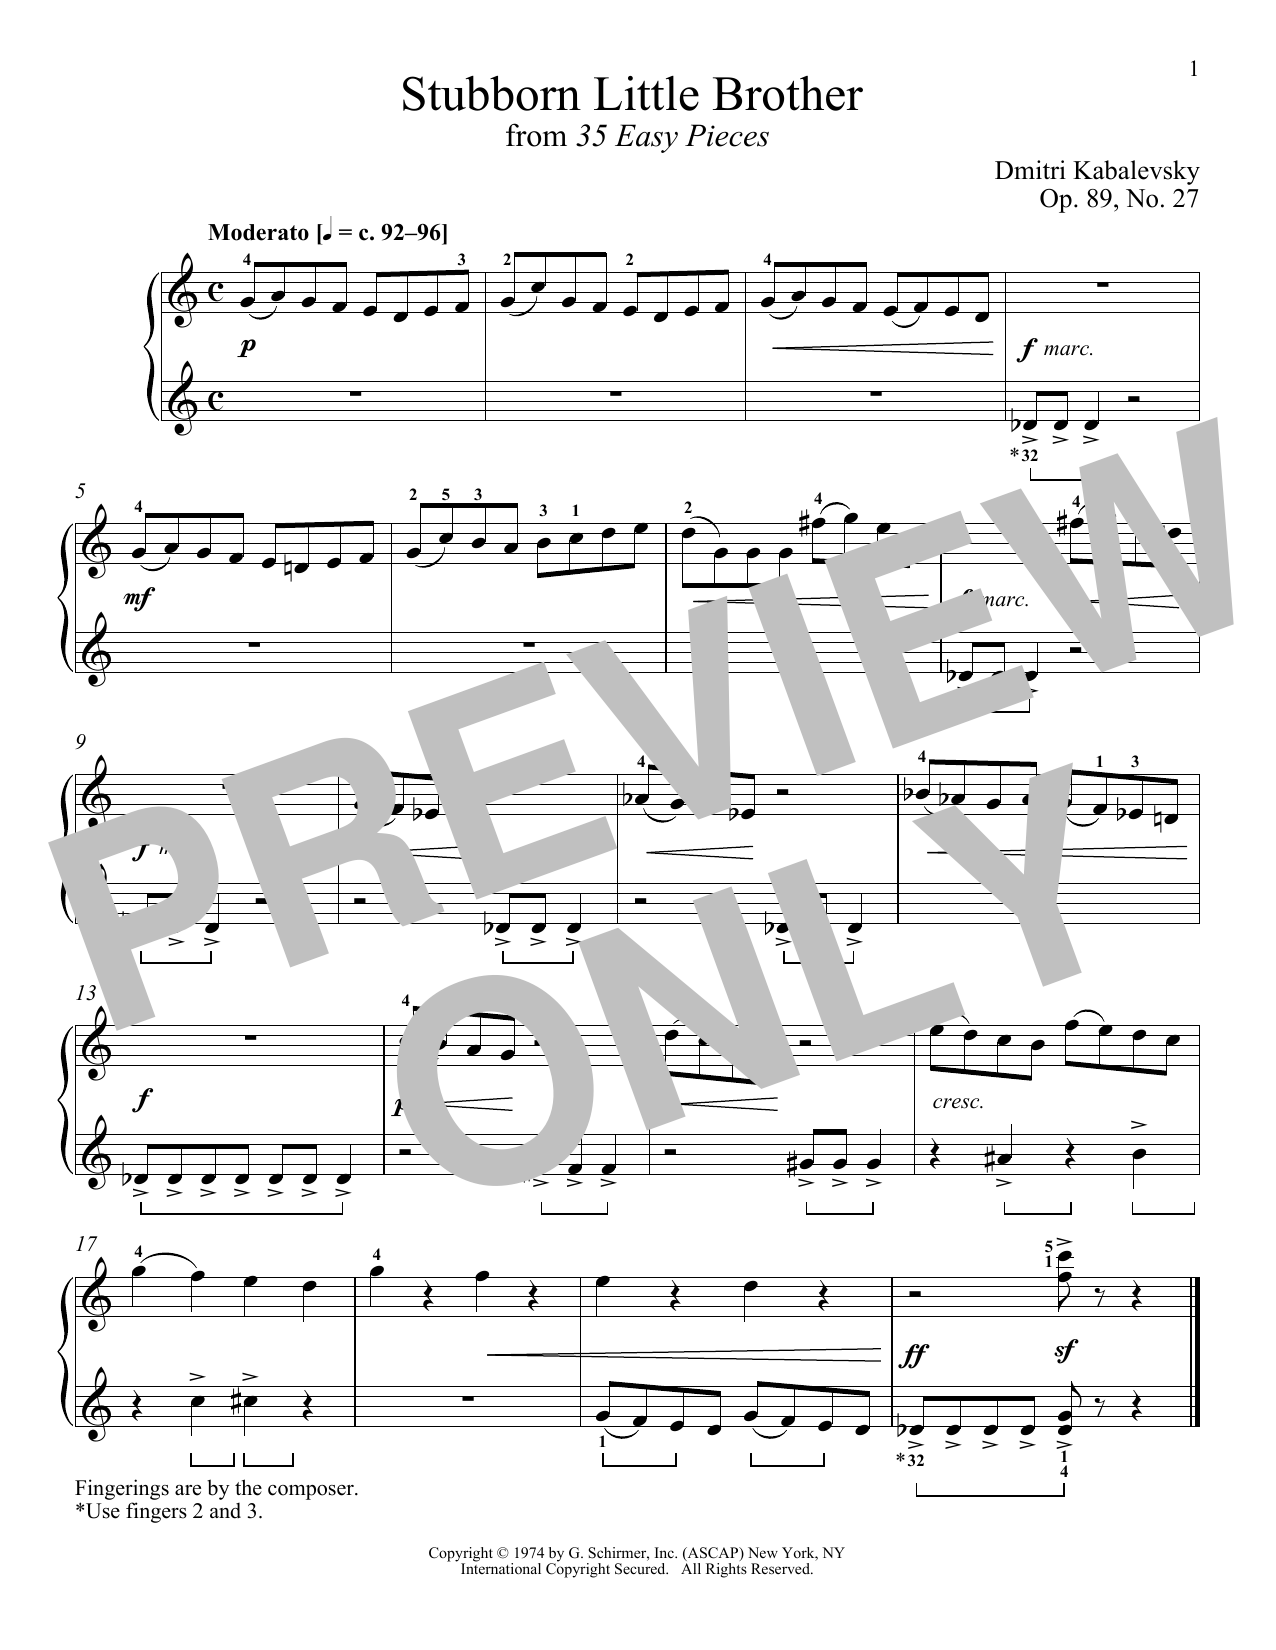 Download Dmitri Kabalevsky 'Stubborn Little Brother, Op. 89, No. 27' Digital Sheet Music Notes & Chords and start playing in minutes